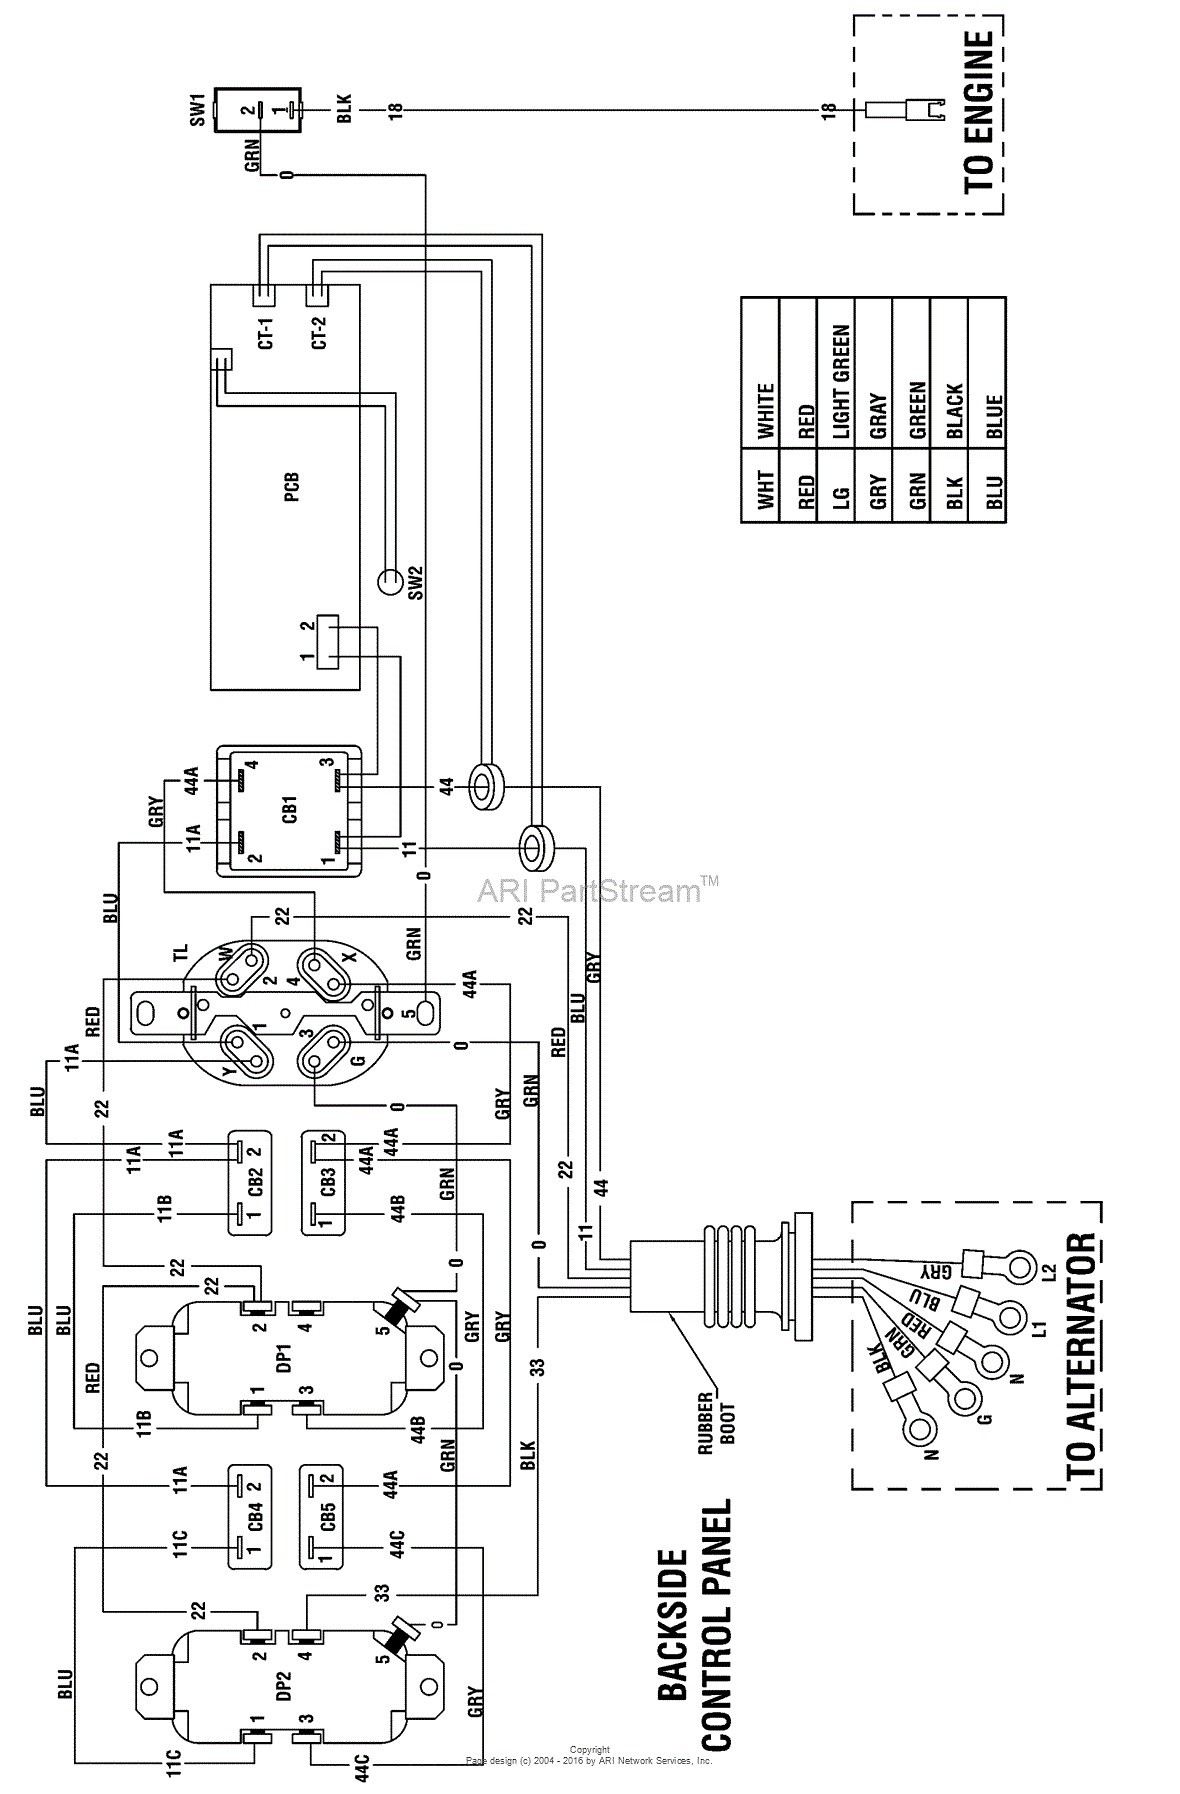 Briggs And Stratton Vanguard Wiring Diagram from detoxicrecenze.com